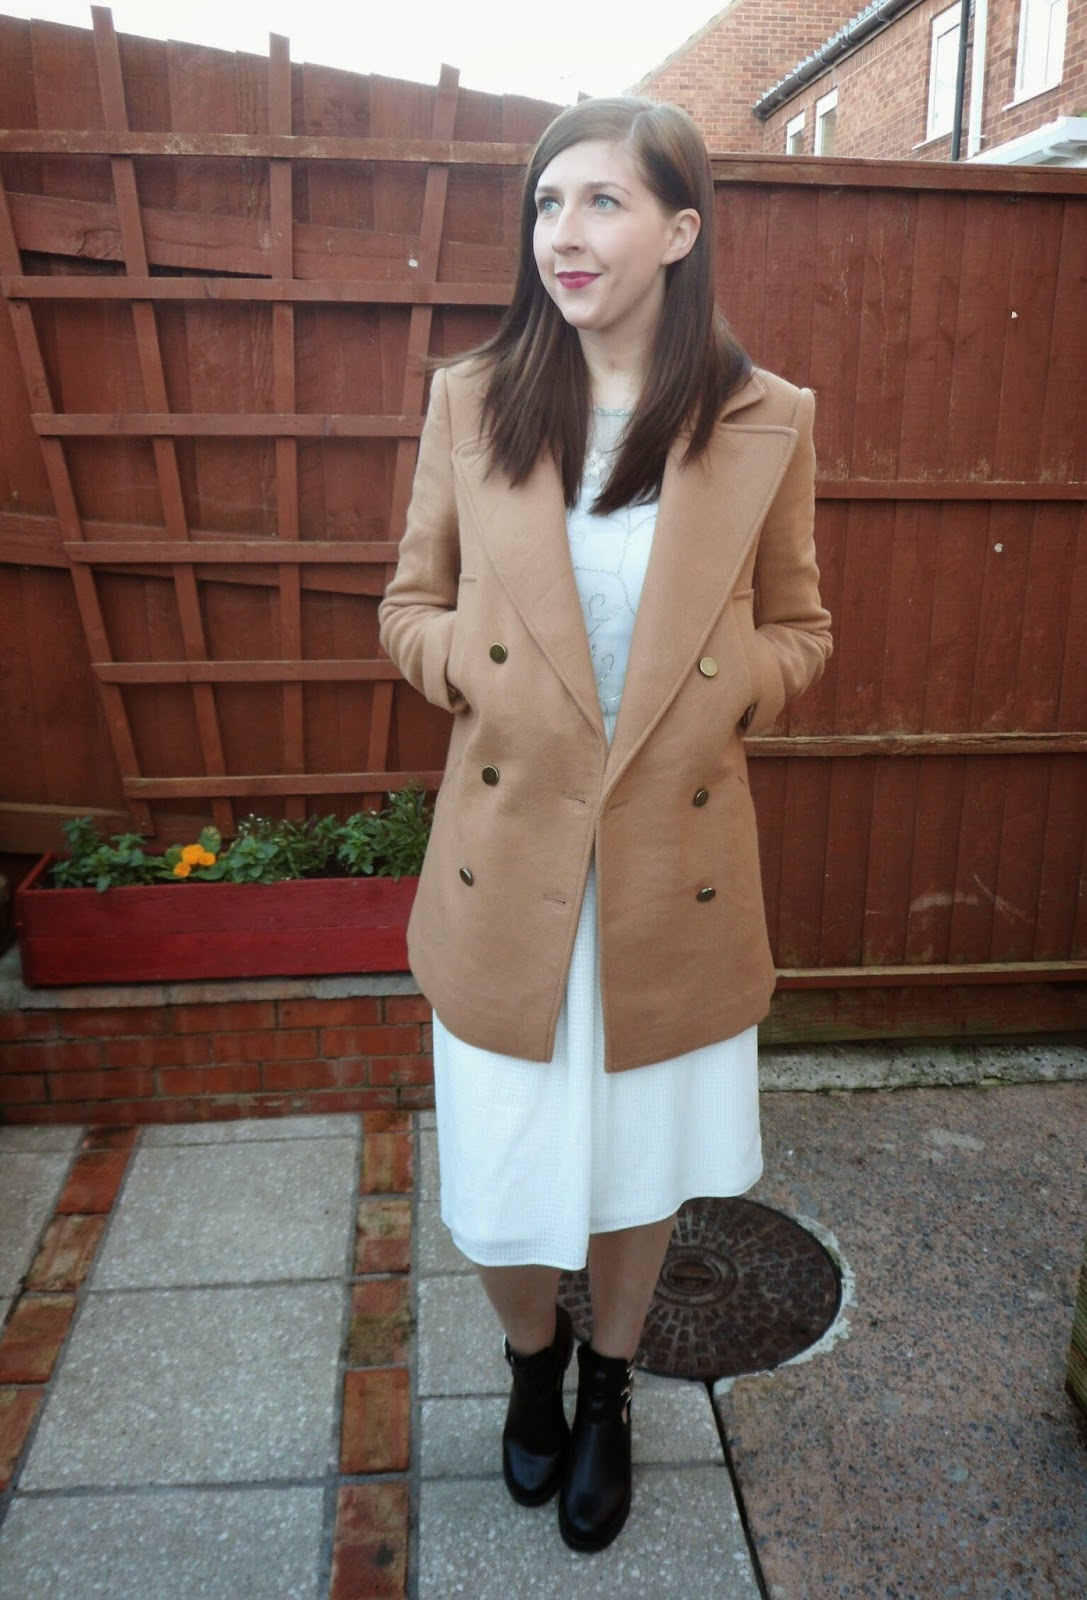 asseenonme, christmasjewellery, fashion, fashionbloggers, fblogger, fbloggers, primark, lookoftheday, lotd, ootd, outfitoftheday, ASOS, whatimwearing, wiw, camelcoat, winter, embellishment, shoezone, heeledboots